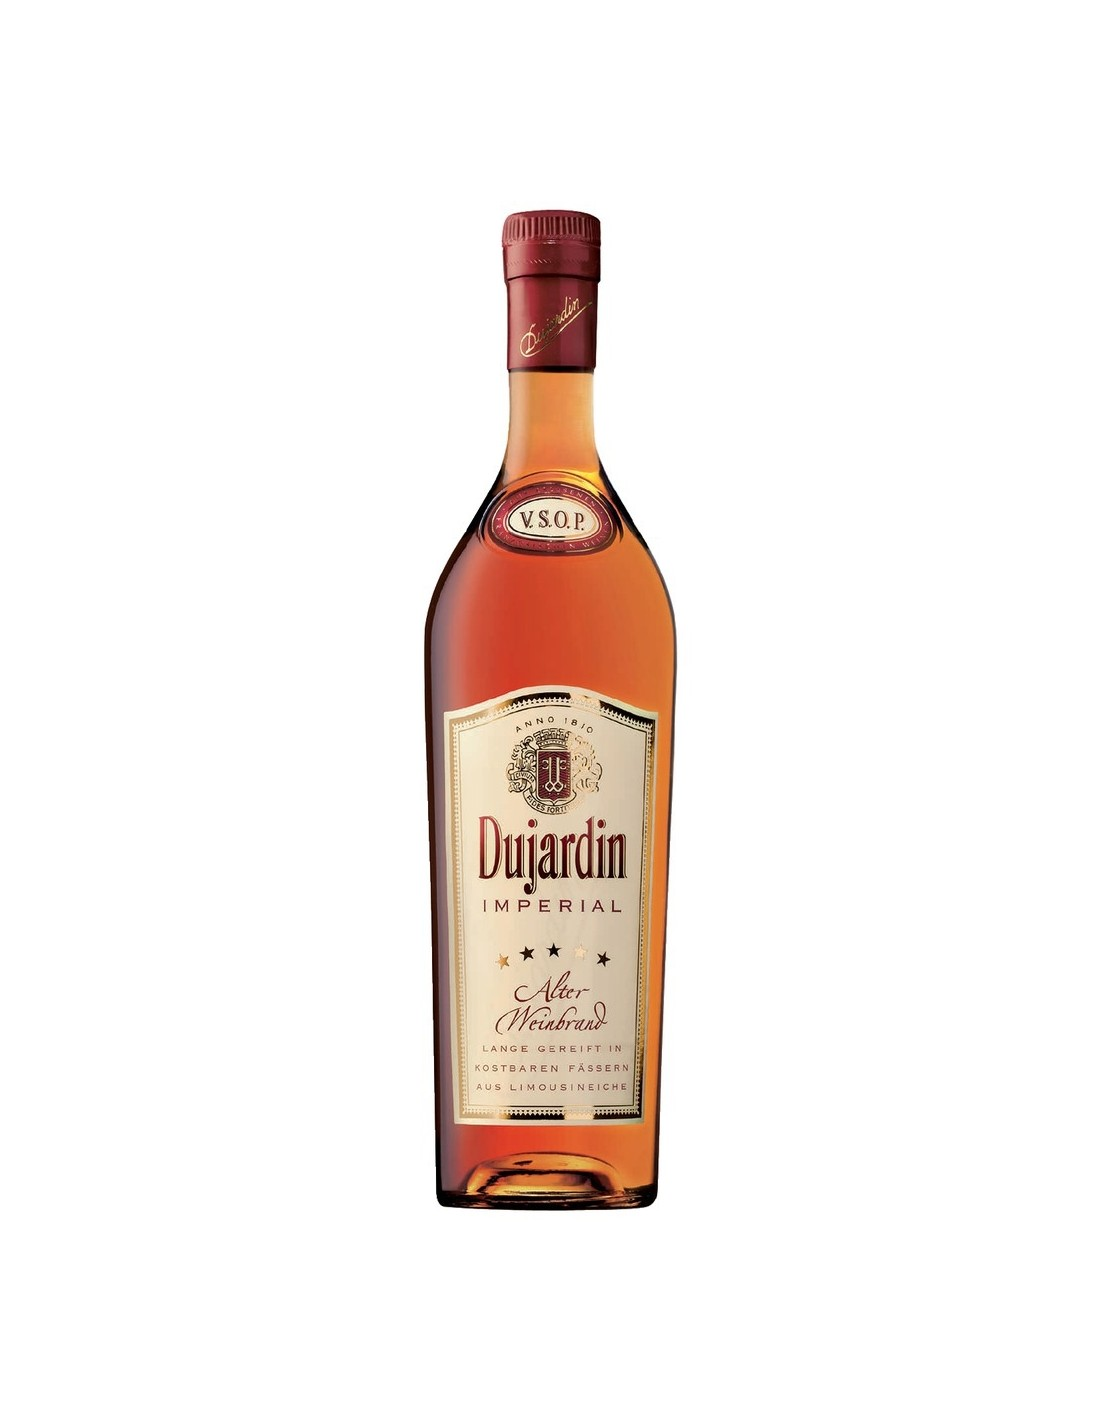 Coniac Brandy Dujardin Imperial VSOP, 36% alc., 0.7L, Germania